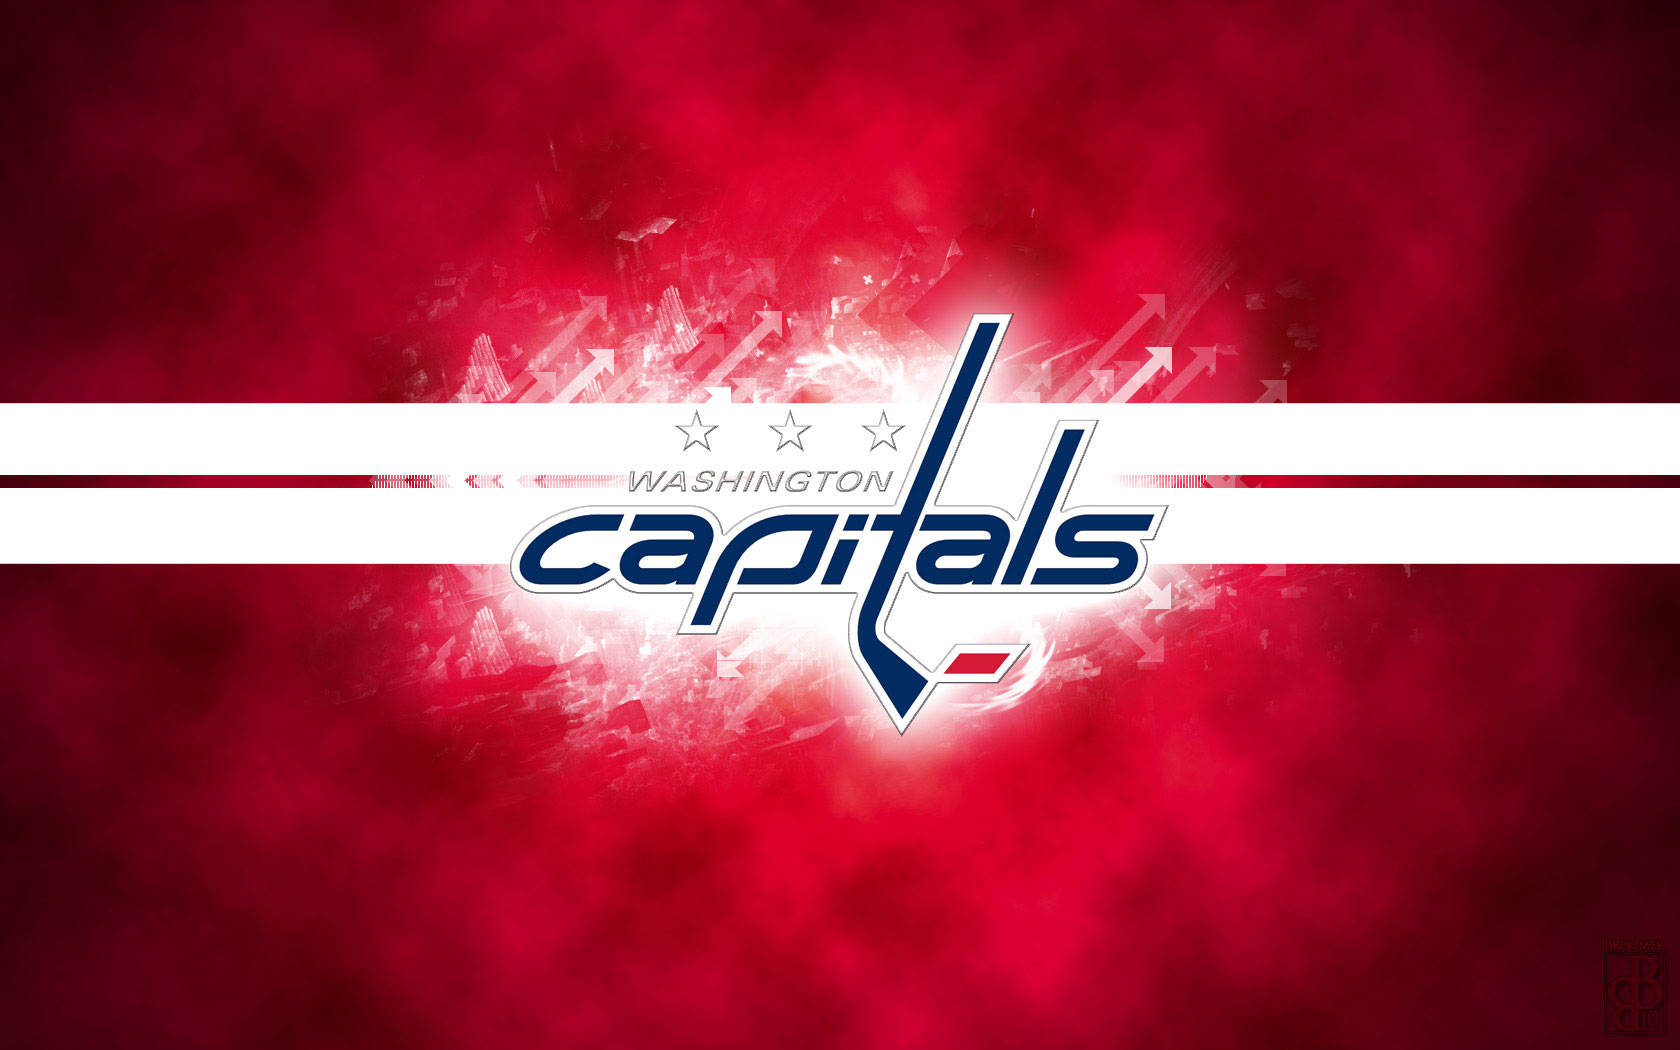 NHL Wallpapers   Washington Capitals Widescreen wallpaper 1680x1050